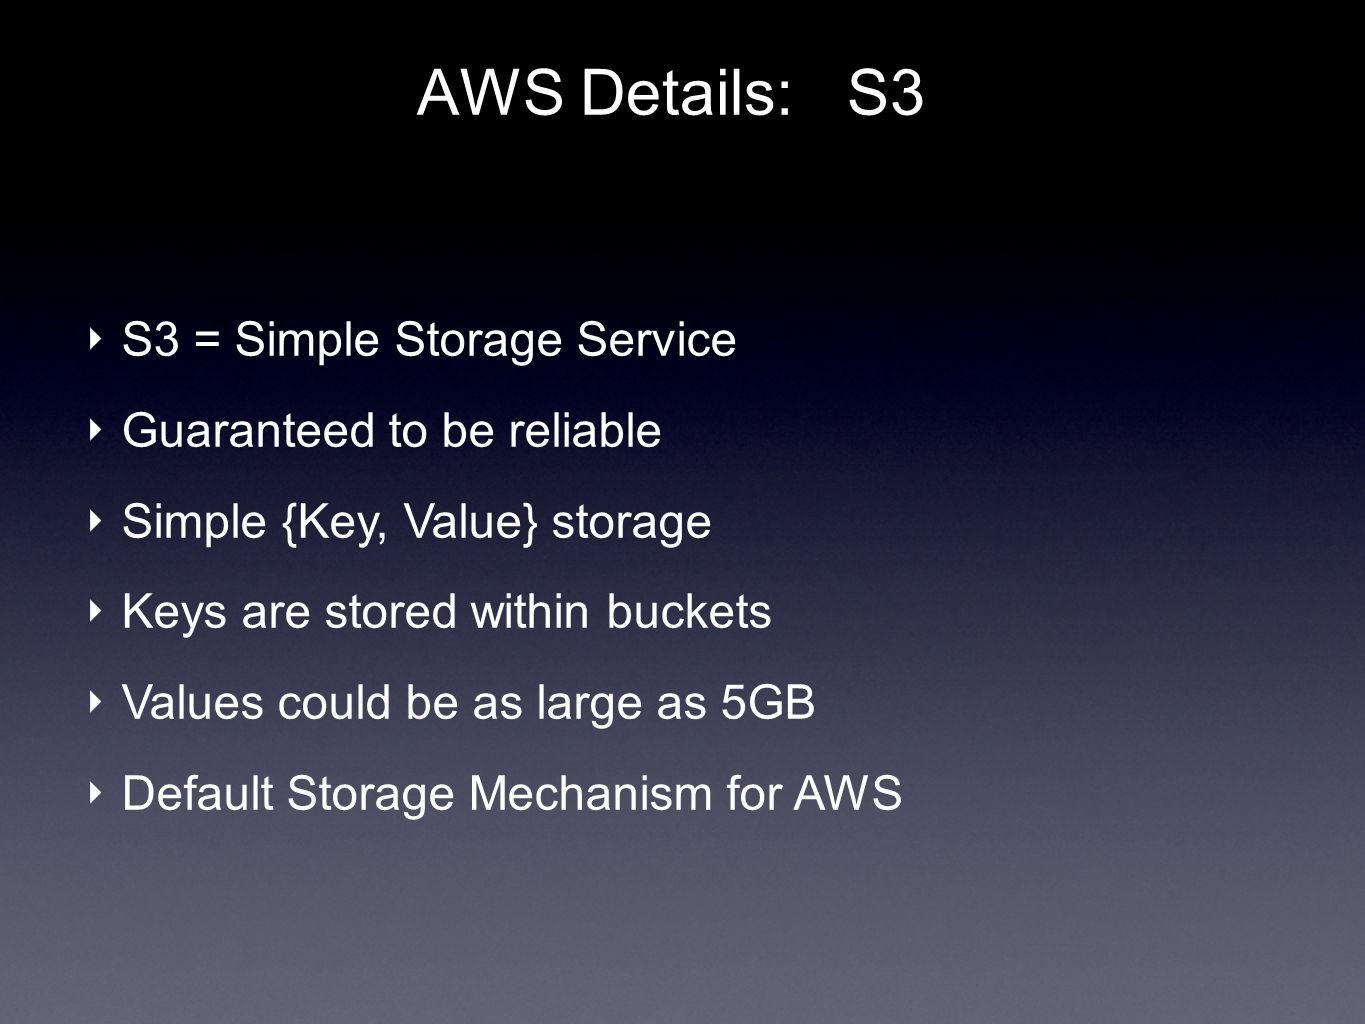 AWS Details: S3 S3 = Simple Storage Service Guaranteed to be reliable Simple {Key, Value} storage Keys are stored within buckets Values could be as large as 5GB Default Storage Mechanism for AWS